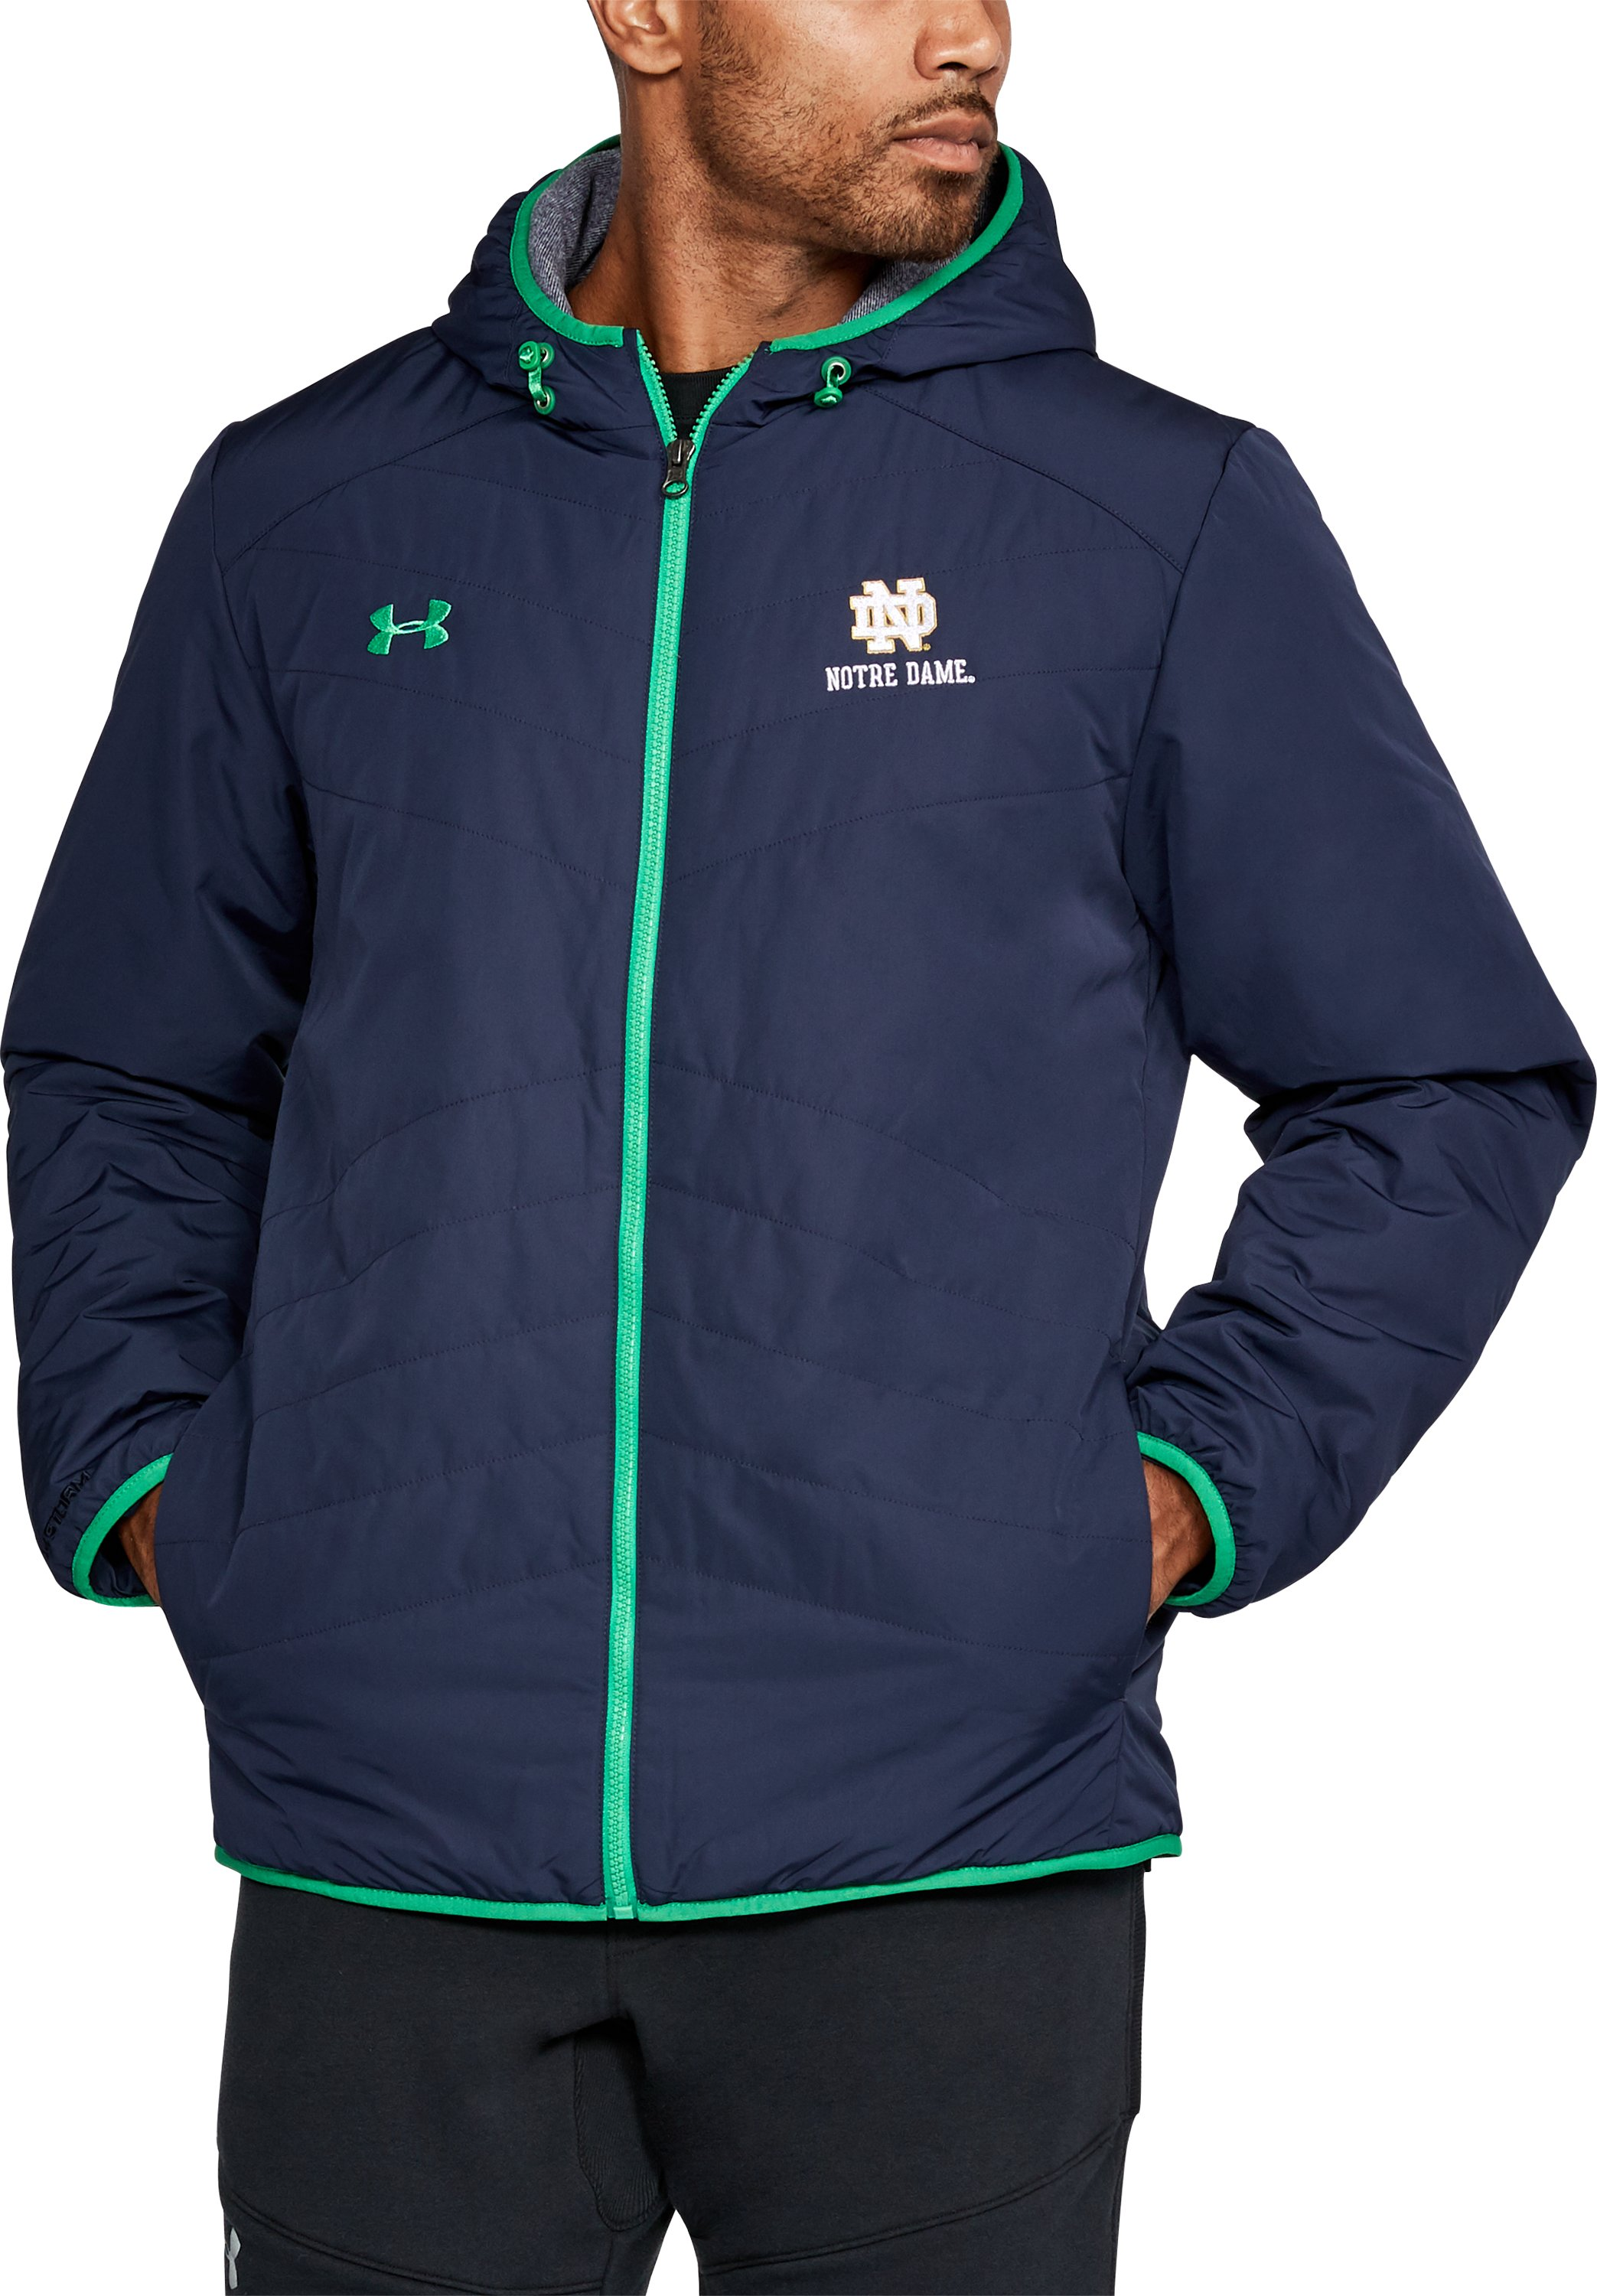 Men's Notre Dame Jacket, Midnight Navy